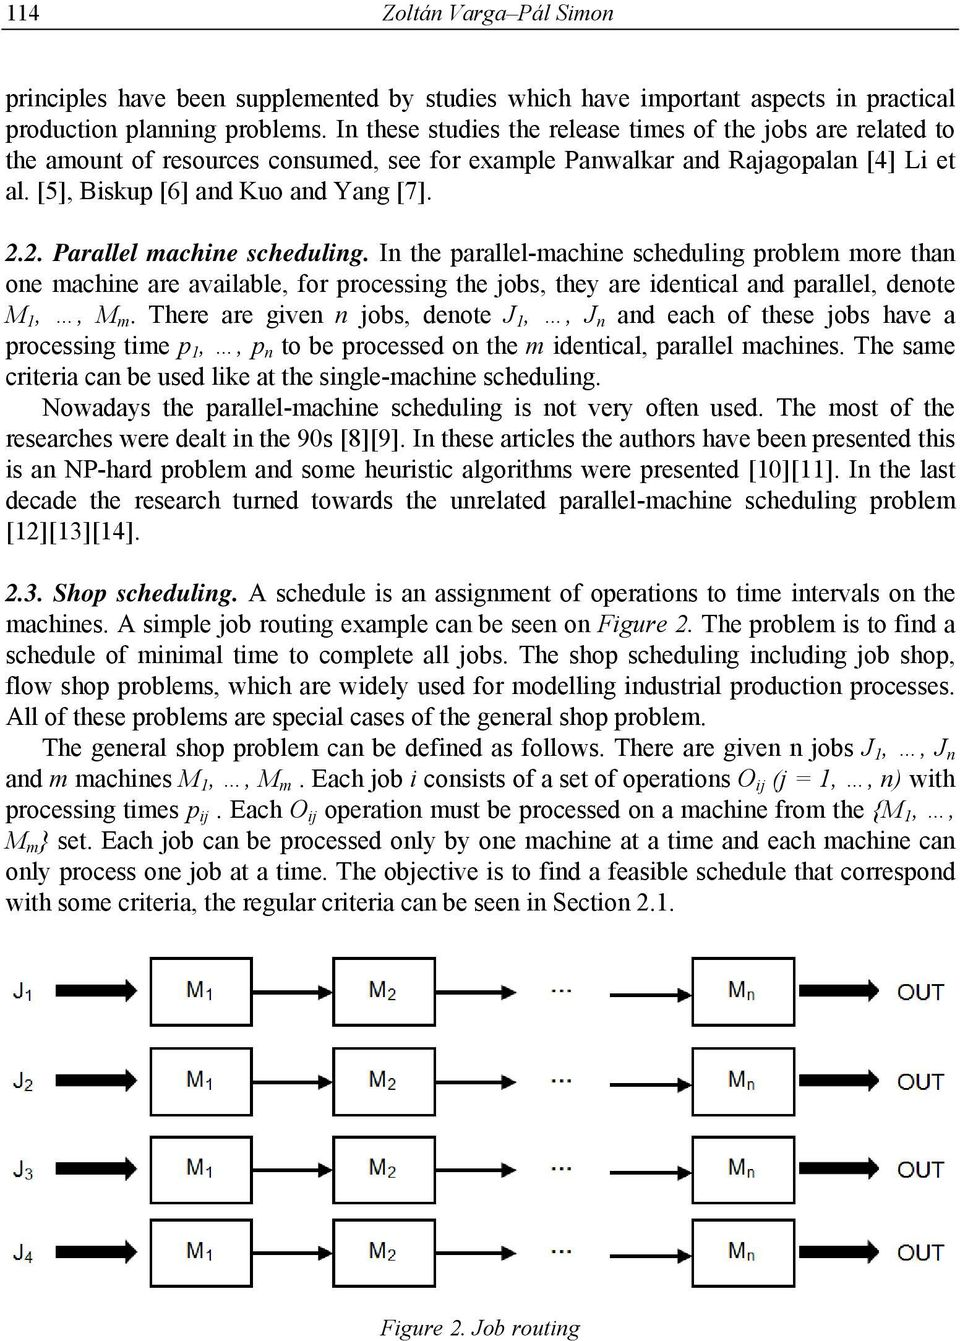 2. Parallel machine scheduling. In the parallel-machine scheduling problem more than one machine are available, for processing the jobs, they are identical and parallel, denote M 1,, M m.